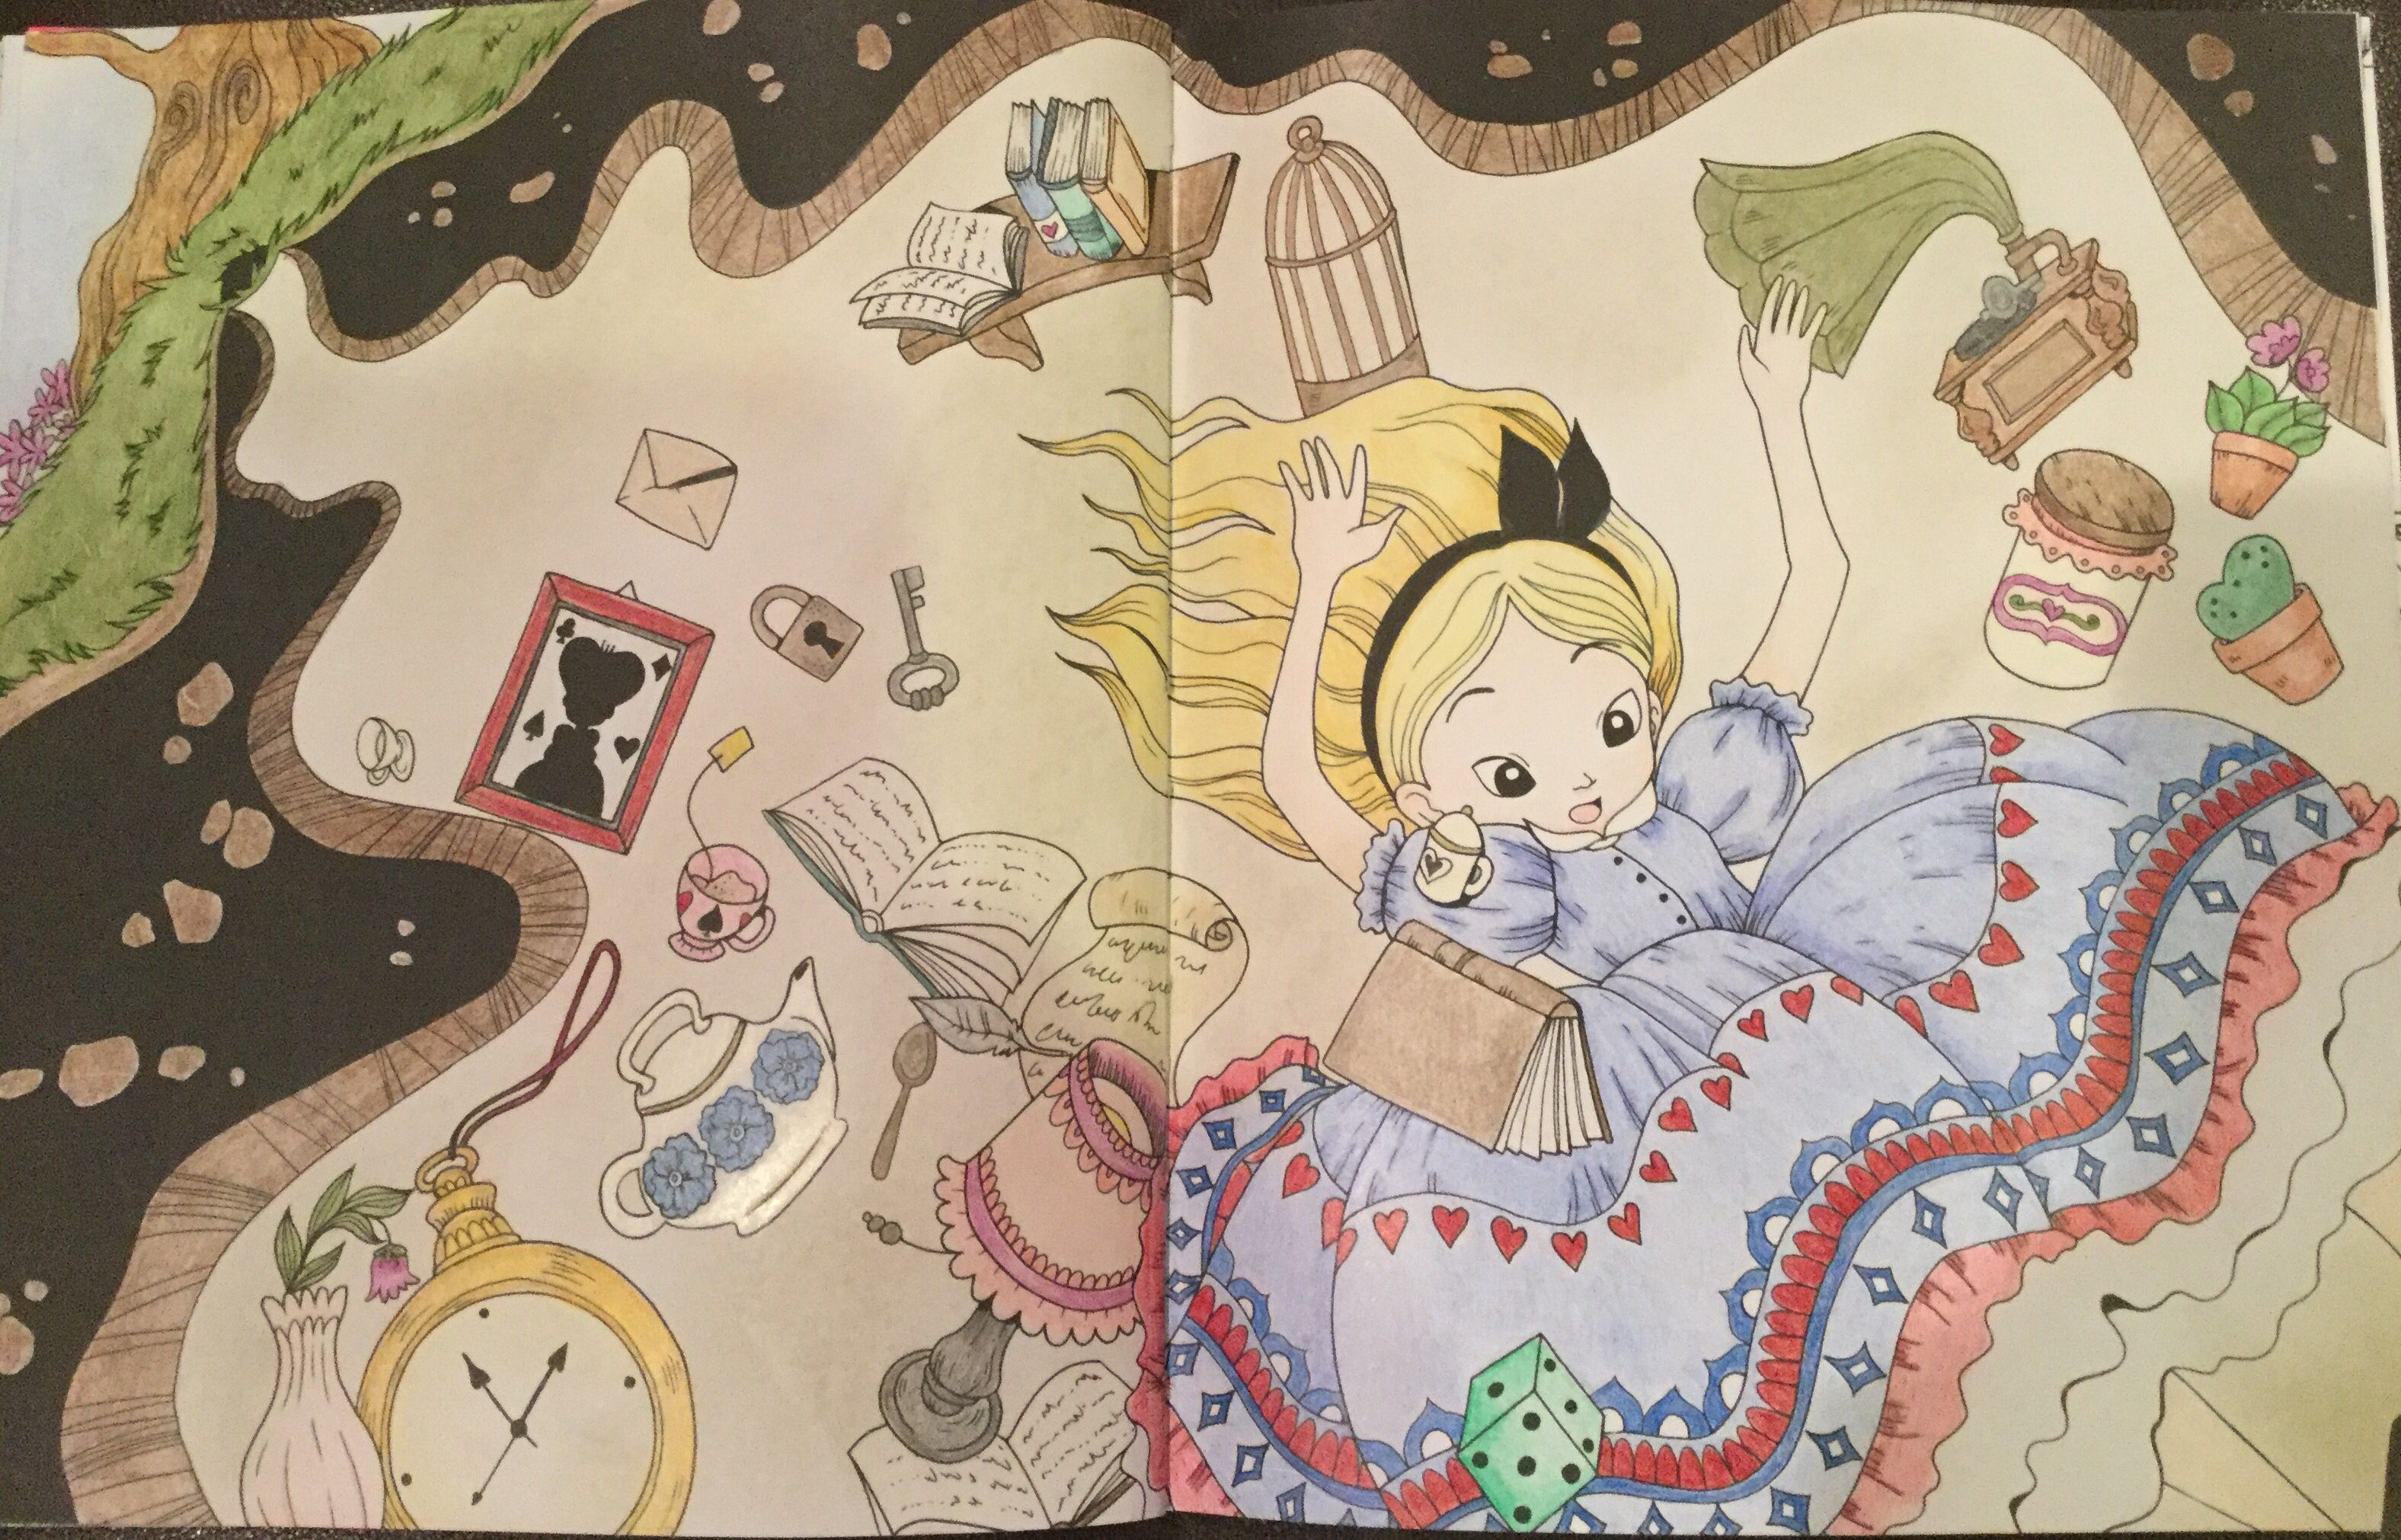 Alice Falling Down In The Rabbit Hole To Wonderland From Alice In Wonderland Coloring Book By Fabiana Attanasio